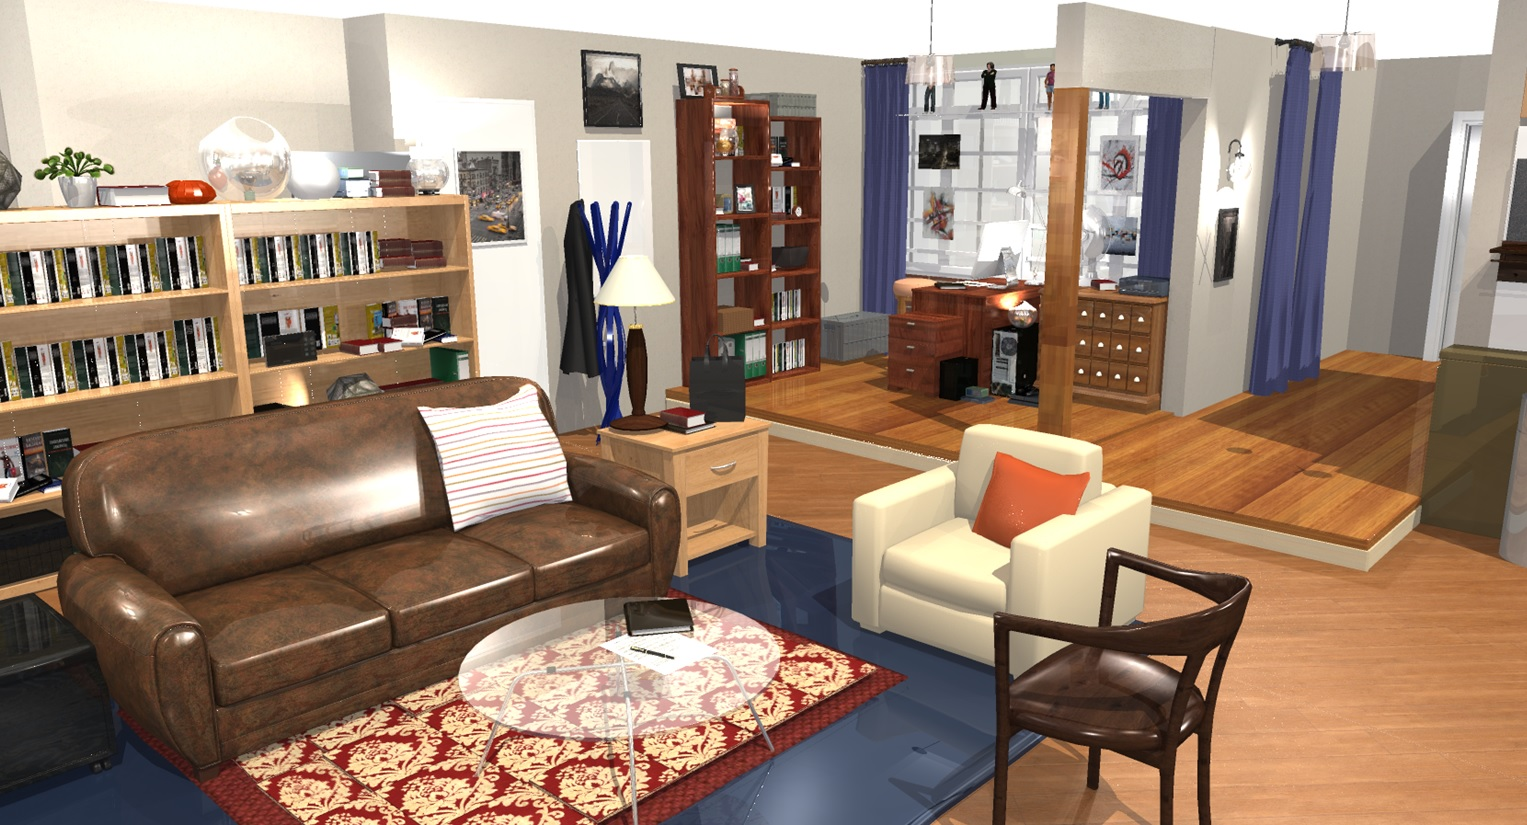 The big bang theory wohnung in 3d homebyme - Home by me ...